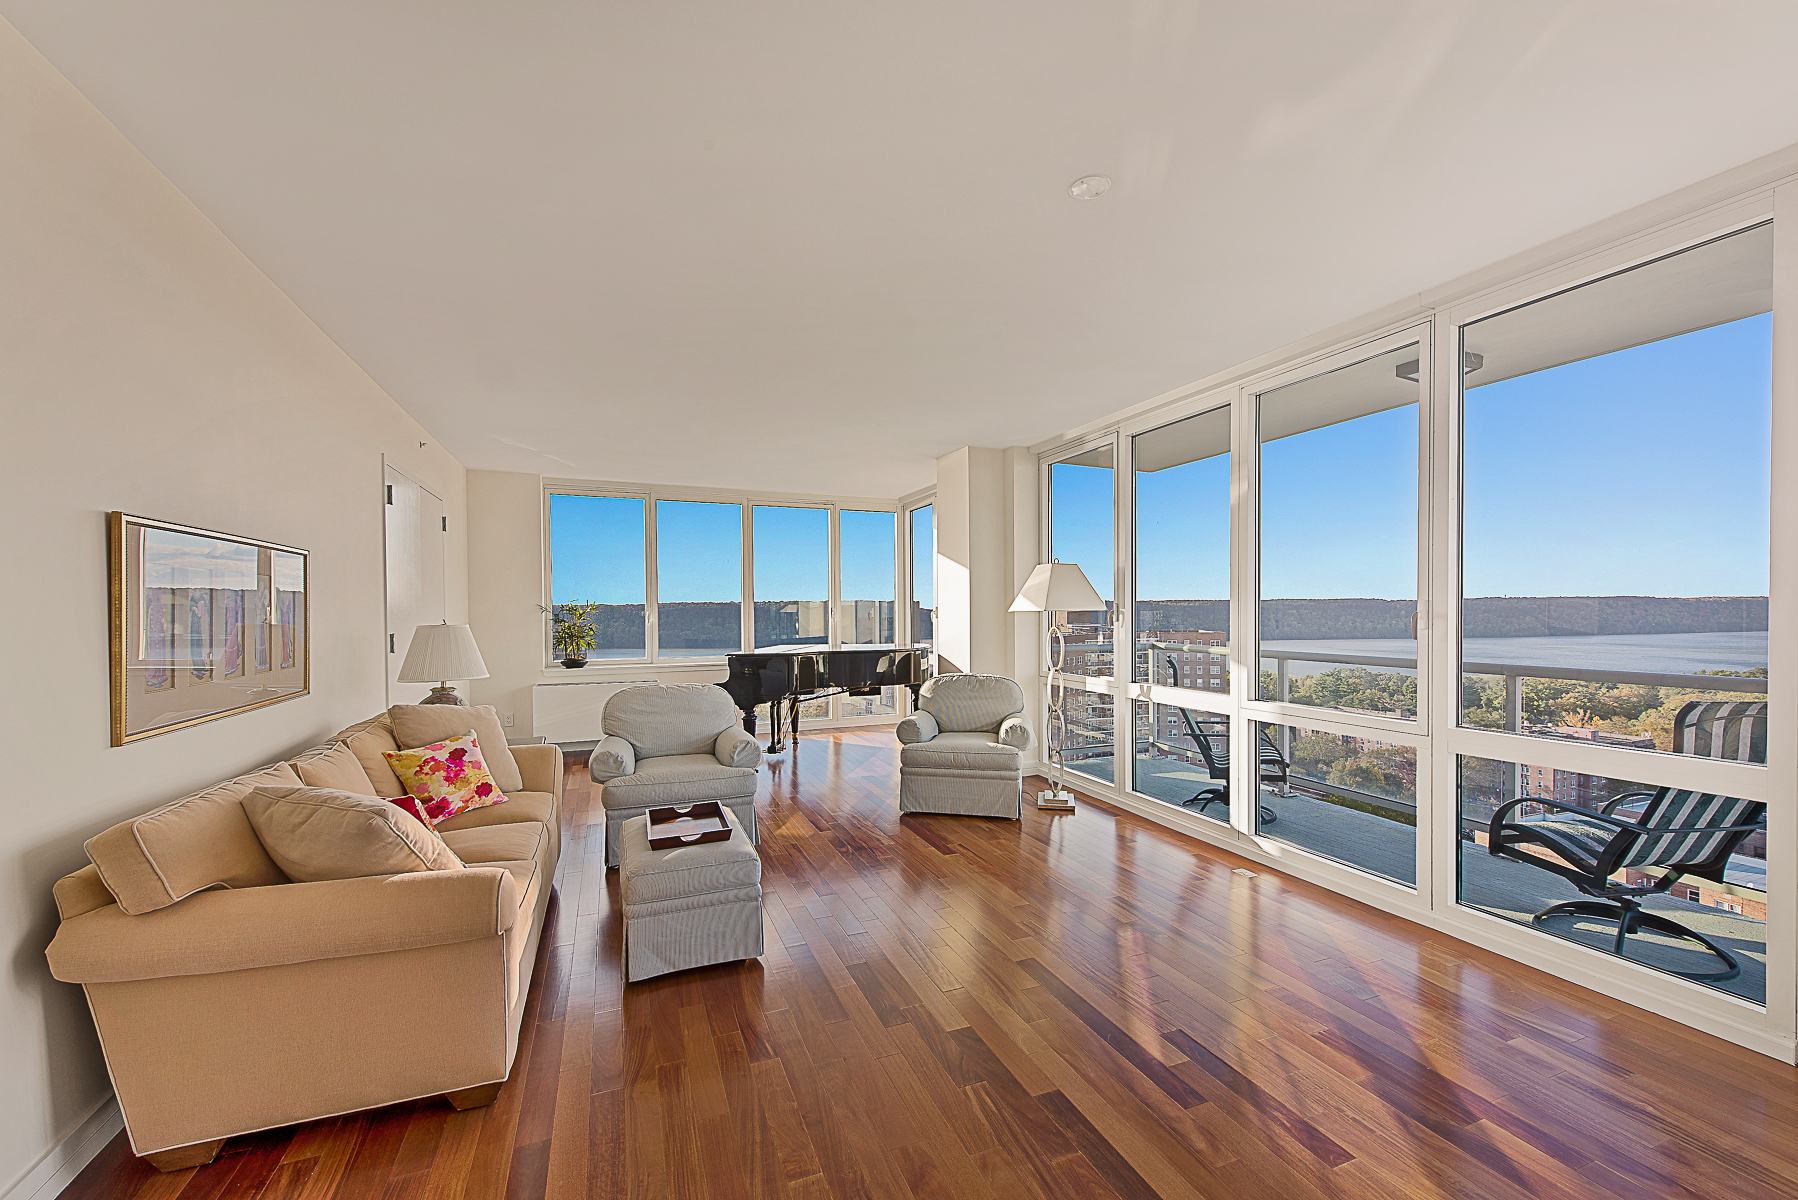 open-houses property at BEST 3 BR CONDO WITH RIVER VIEWS